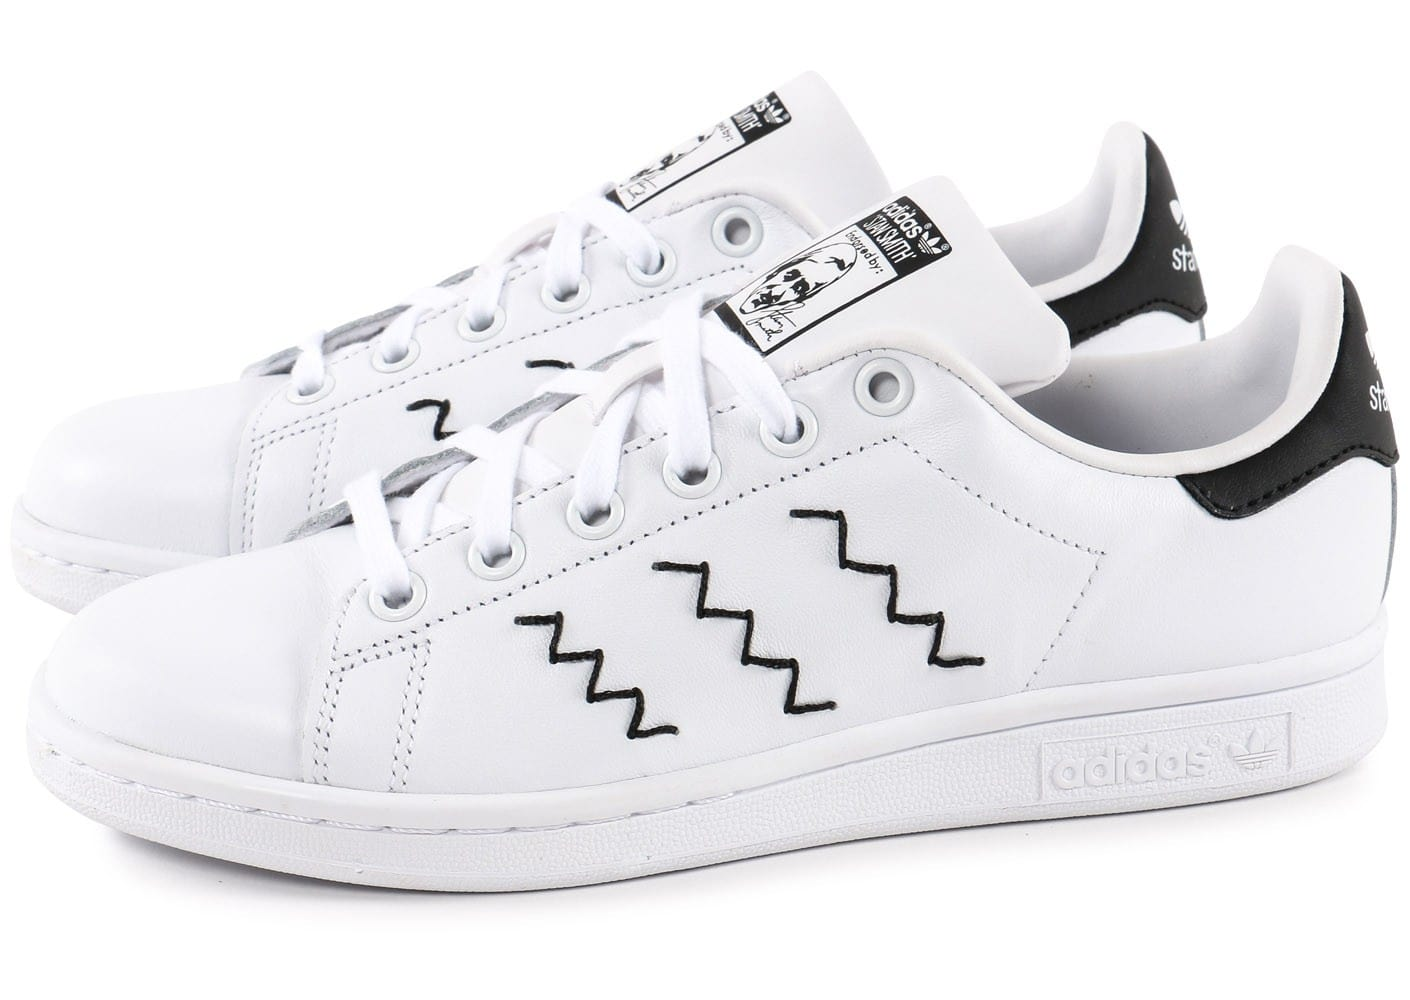 adidas stan smith zigzag blanche et noire chaussures adidas chausport. Black Bedroom Furniture Sets. Home Design Ideas